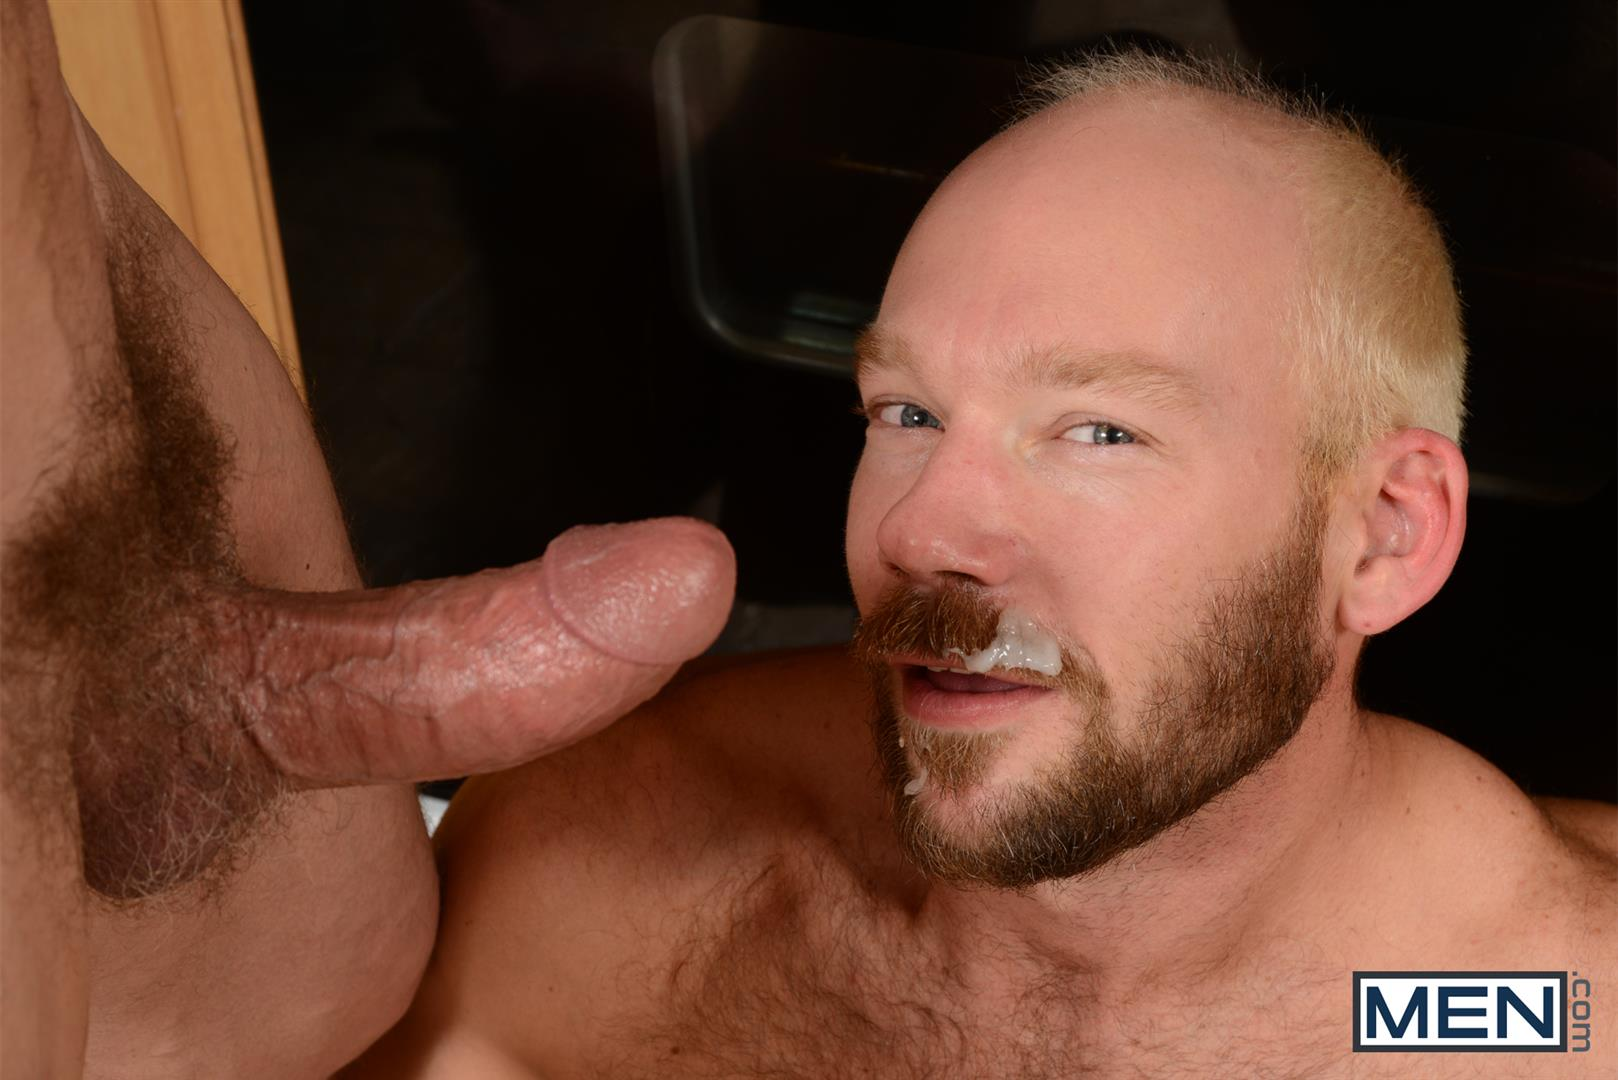 Men-Drill-My-Hole-Max-Sargent-and-Mike-Tanner-Thick-Cock-Daddys-Fucking-Amateur-Gay-Porn-13 Hairy Muscle Daddy's Fucking In The Kitchen And Eating Cum